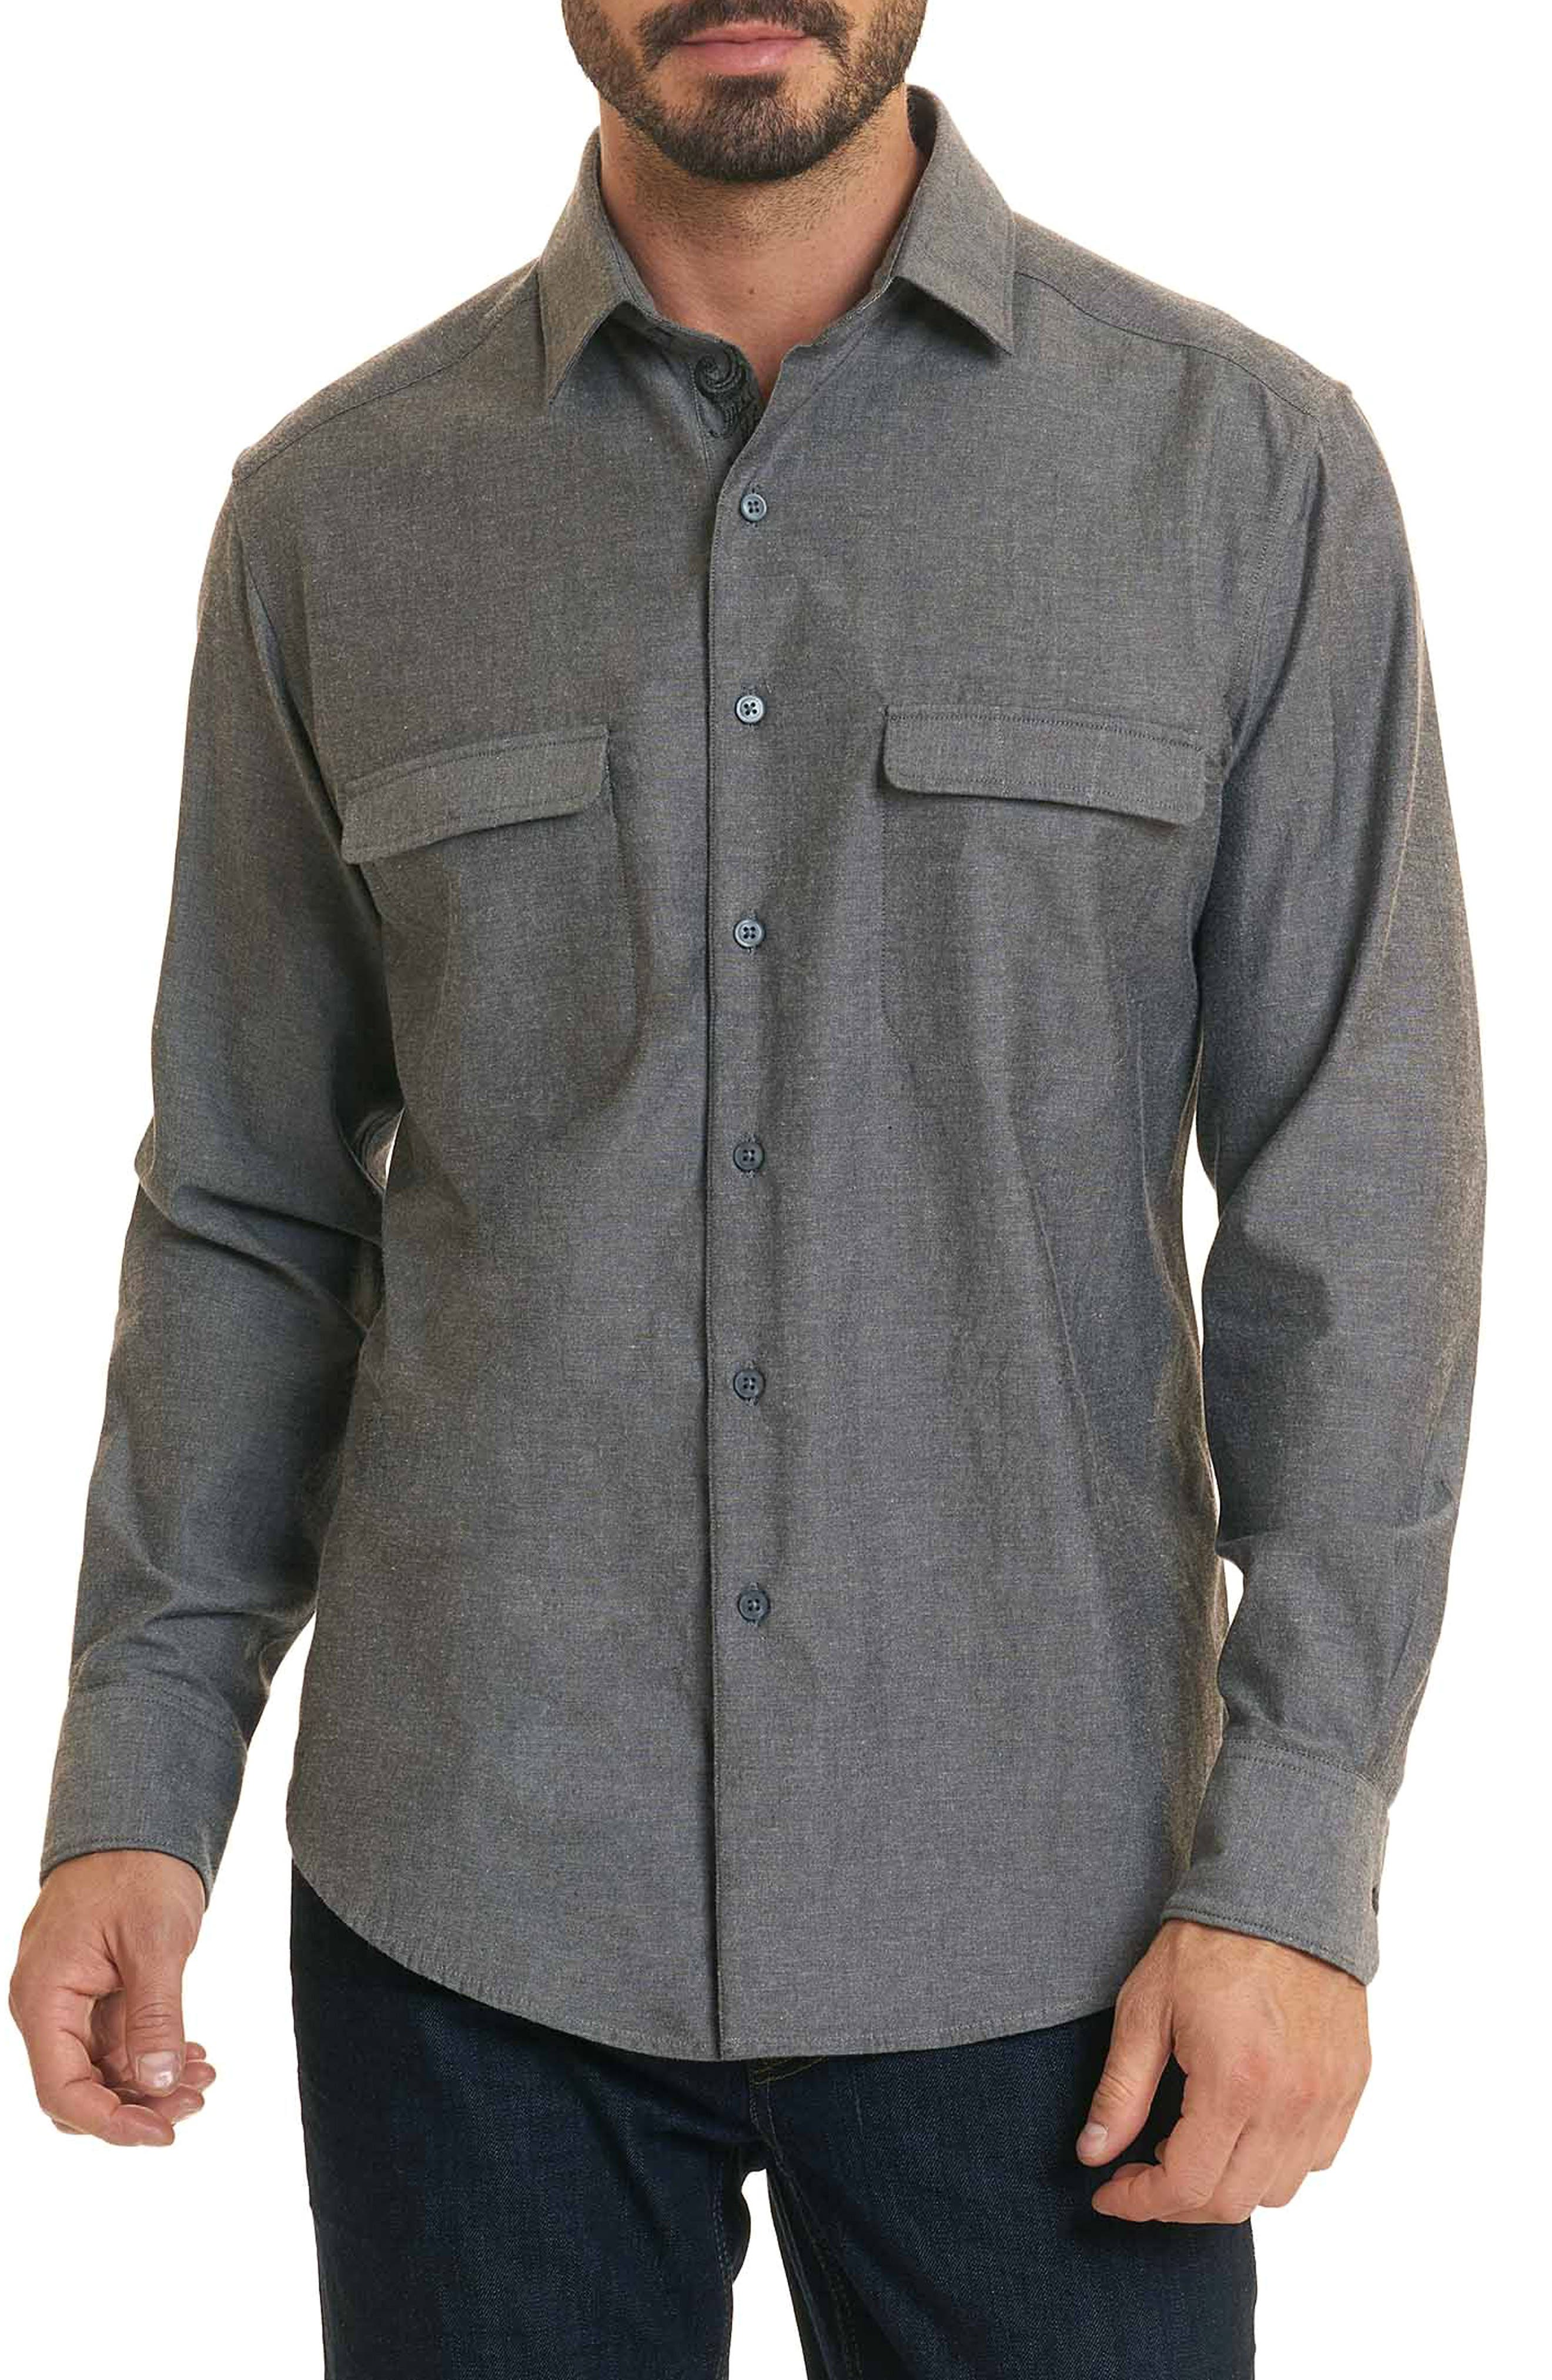 Maestre Classic Fit Sport Shirt,                             Main thumbnail 1, color,                             GREY